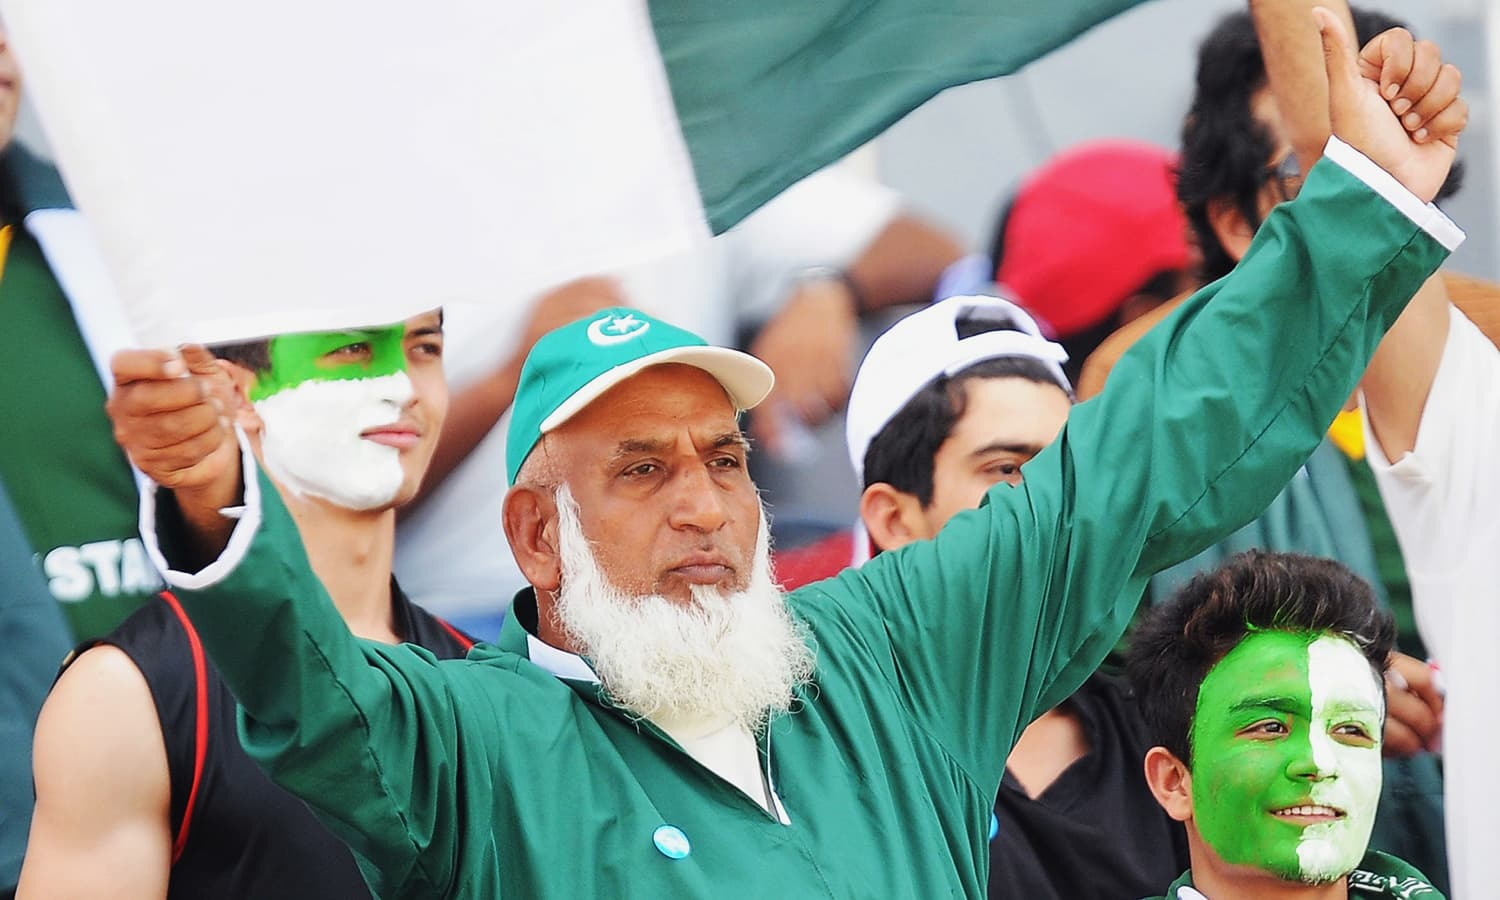 Chacha Cricket: Pakistan's most famous cheerleader